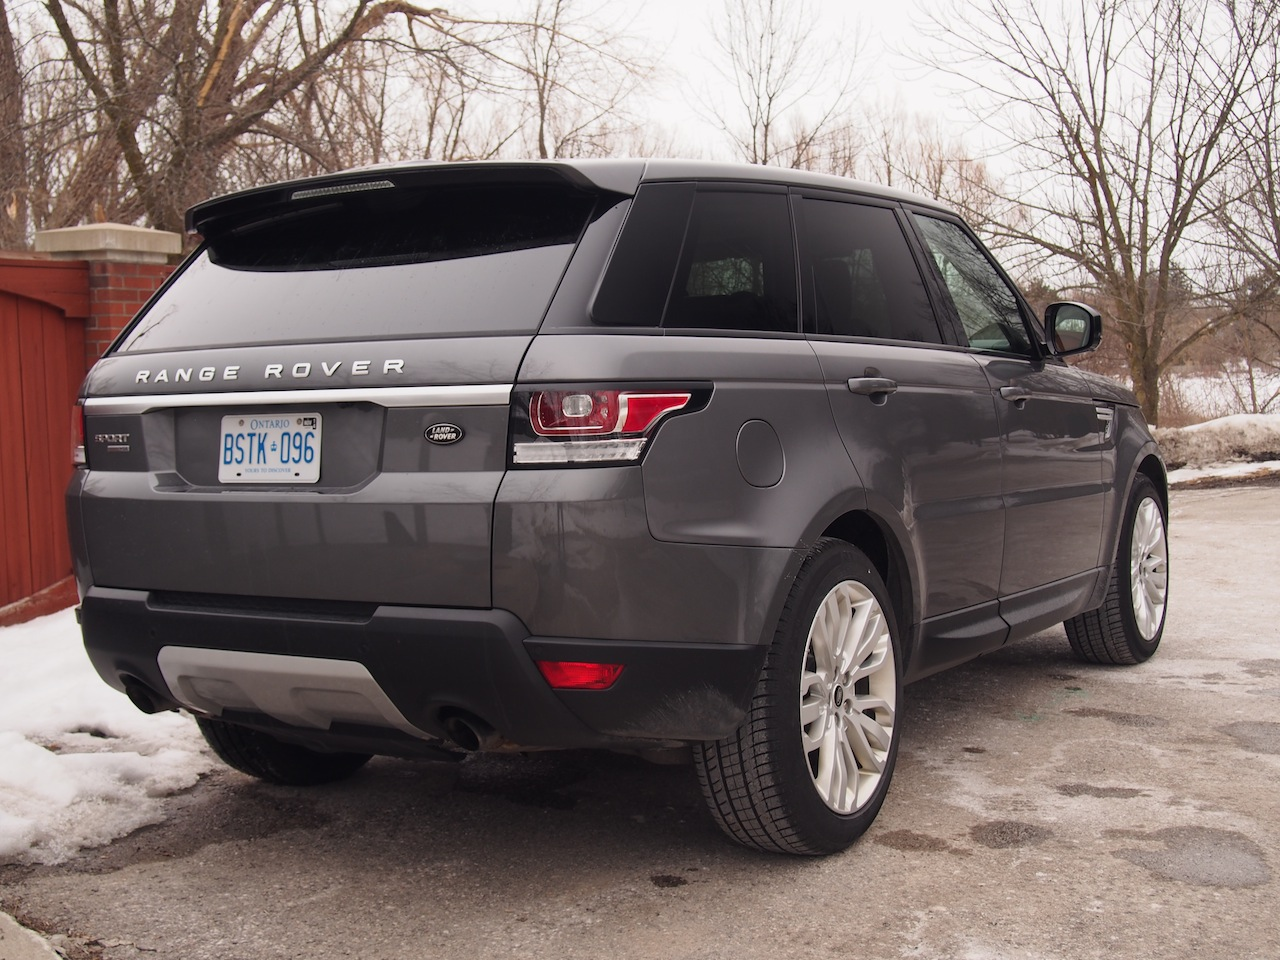 2014 range rover sport v6 hse cars photos test drives and reviews canadian auto review. Black Bedroom Furniture Sets. Home Design Ideas